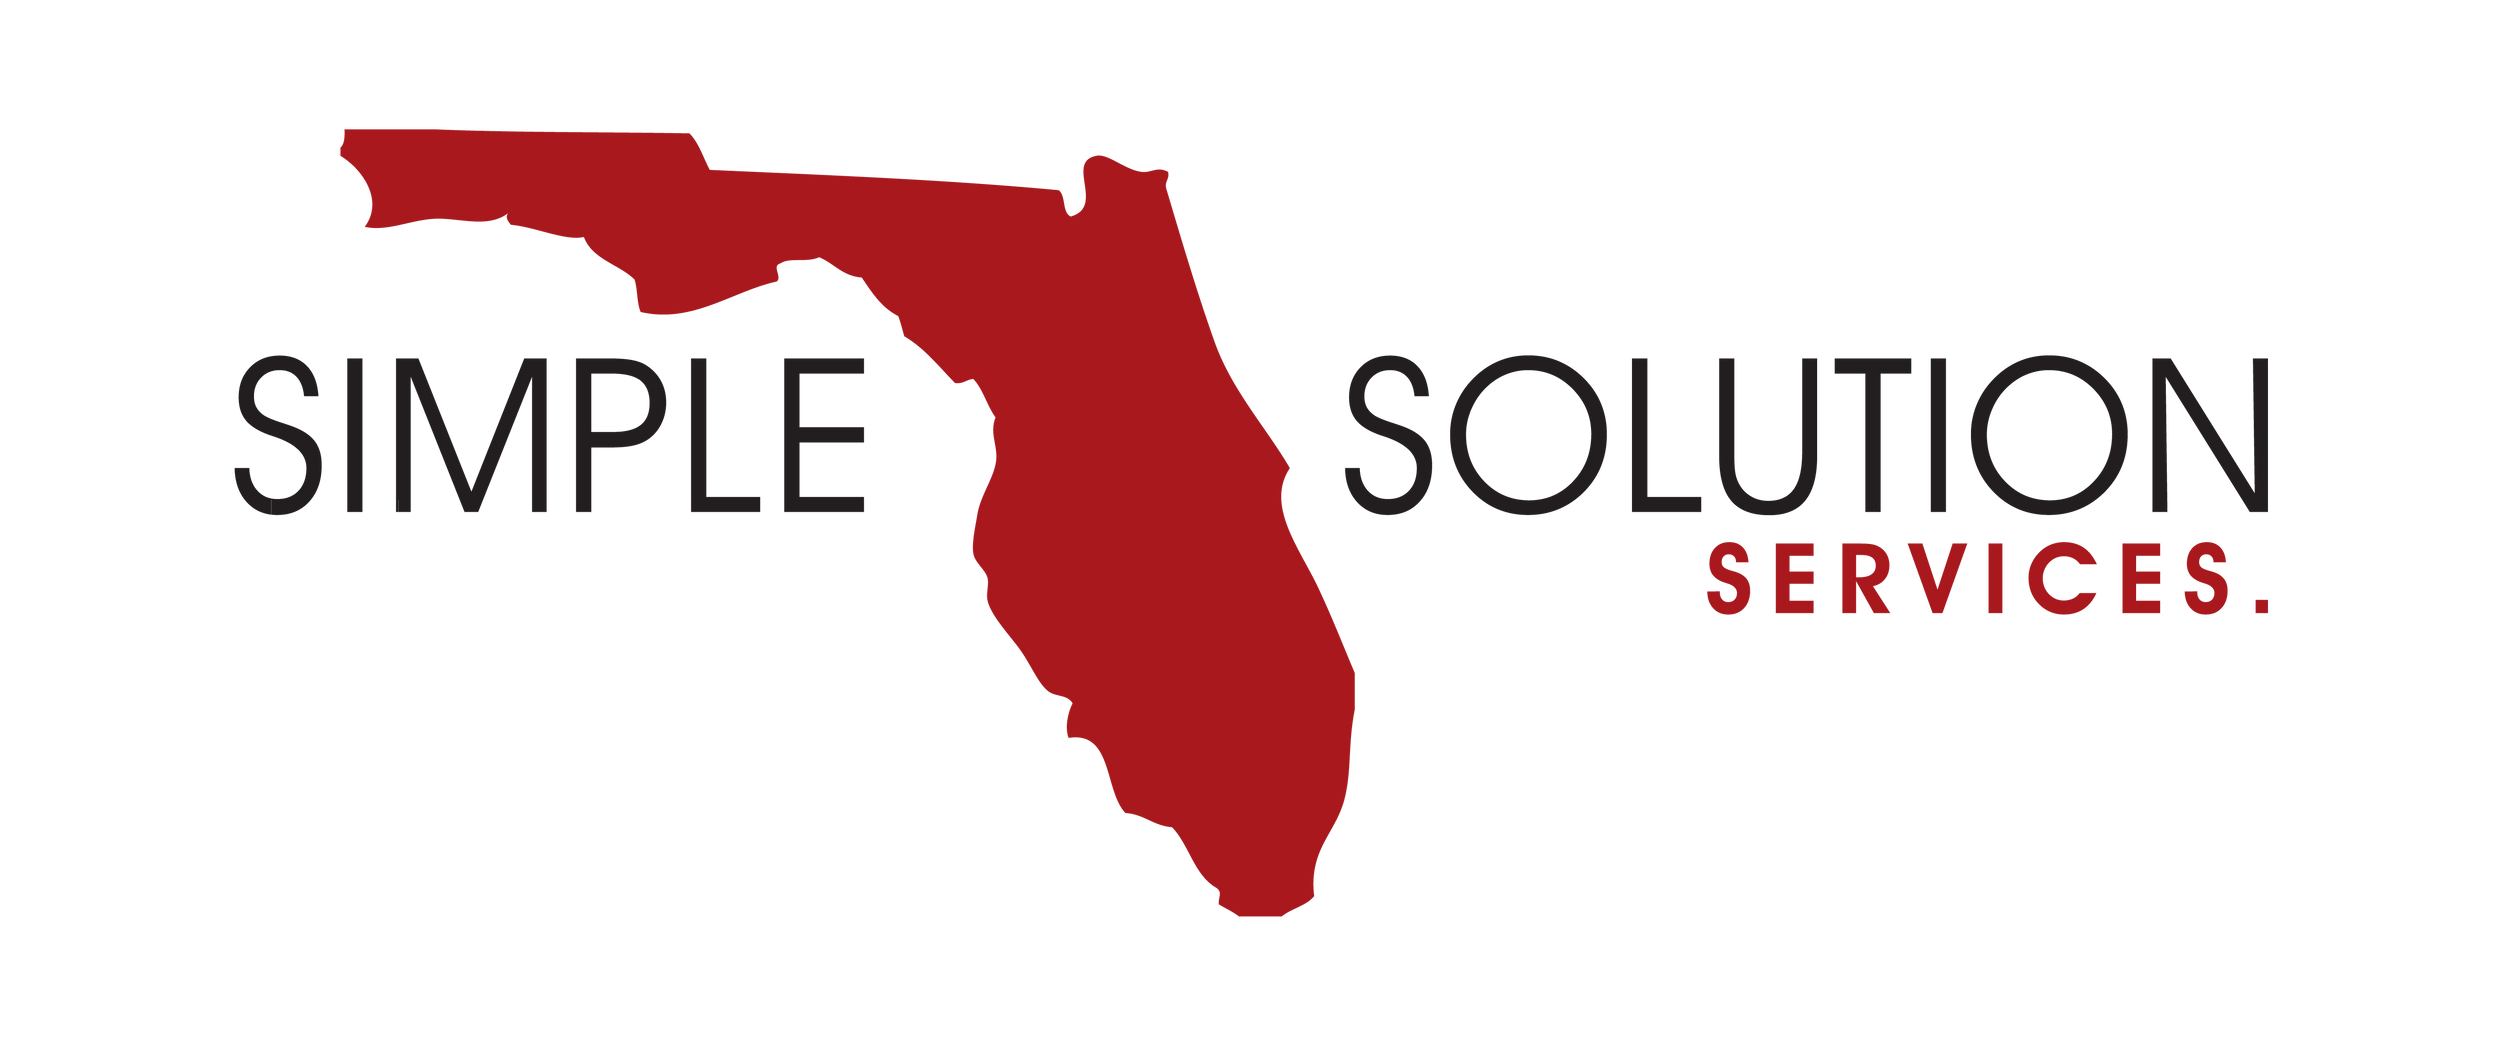 Simple Solution Service